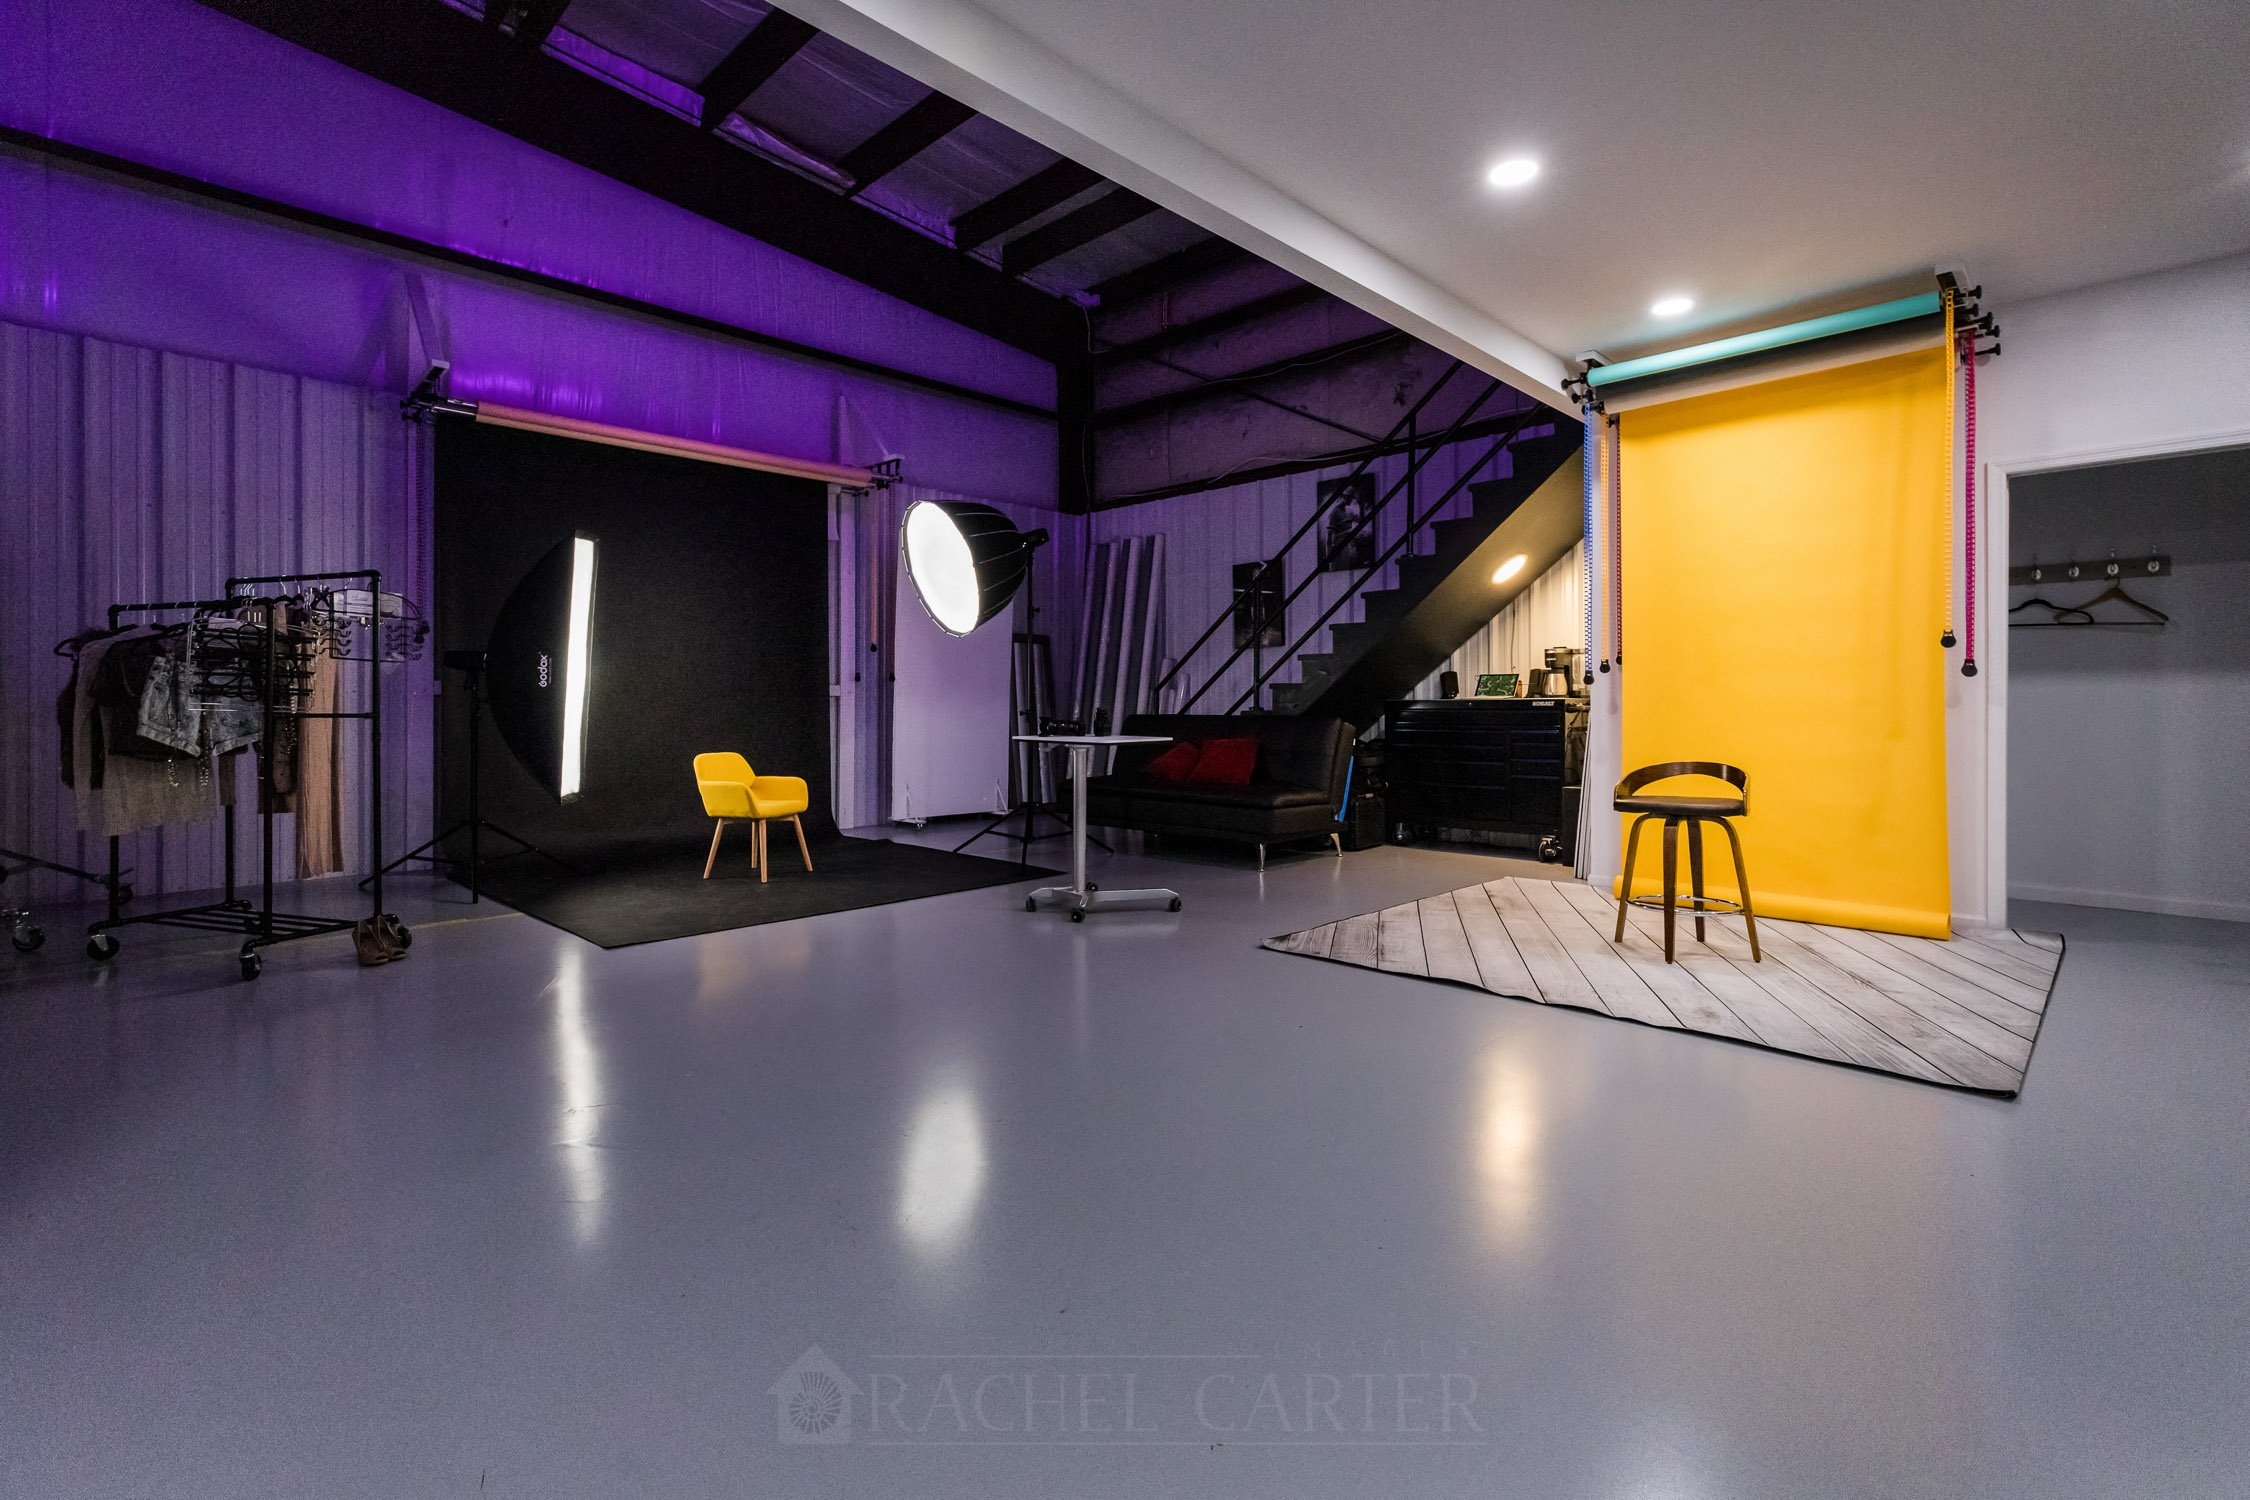 Topsail Photo Studio - Rachel Carter Images